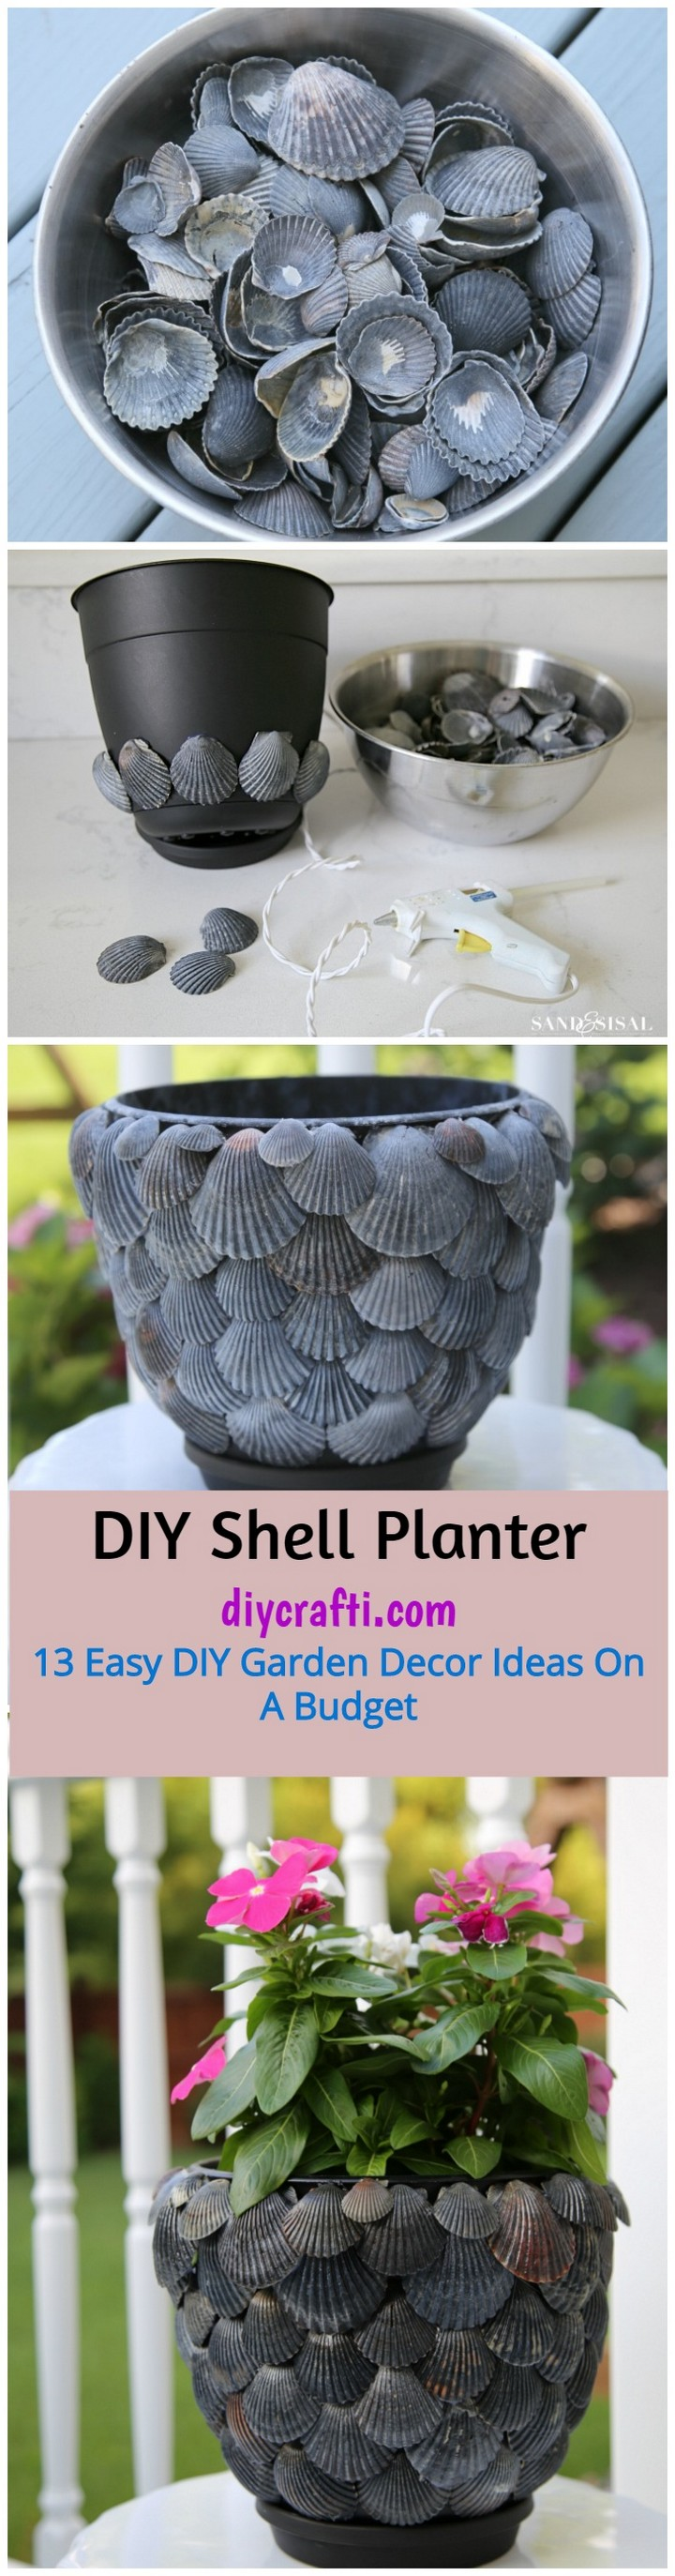 13 Easy DIY Garden Decor Ideas On A Budget